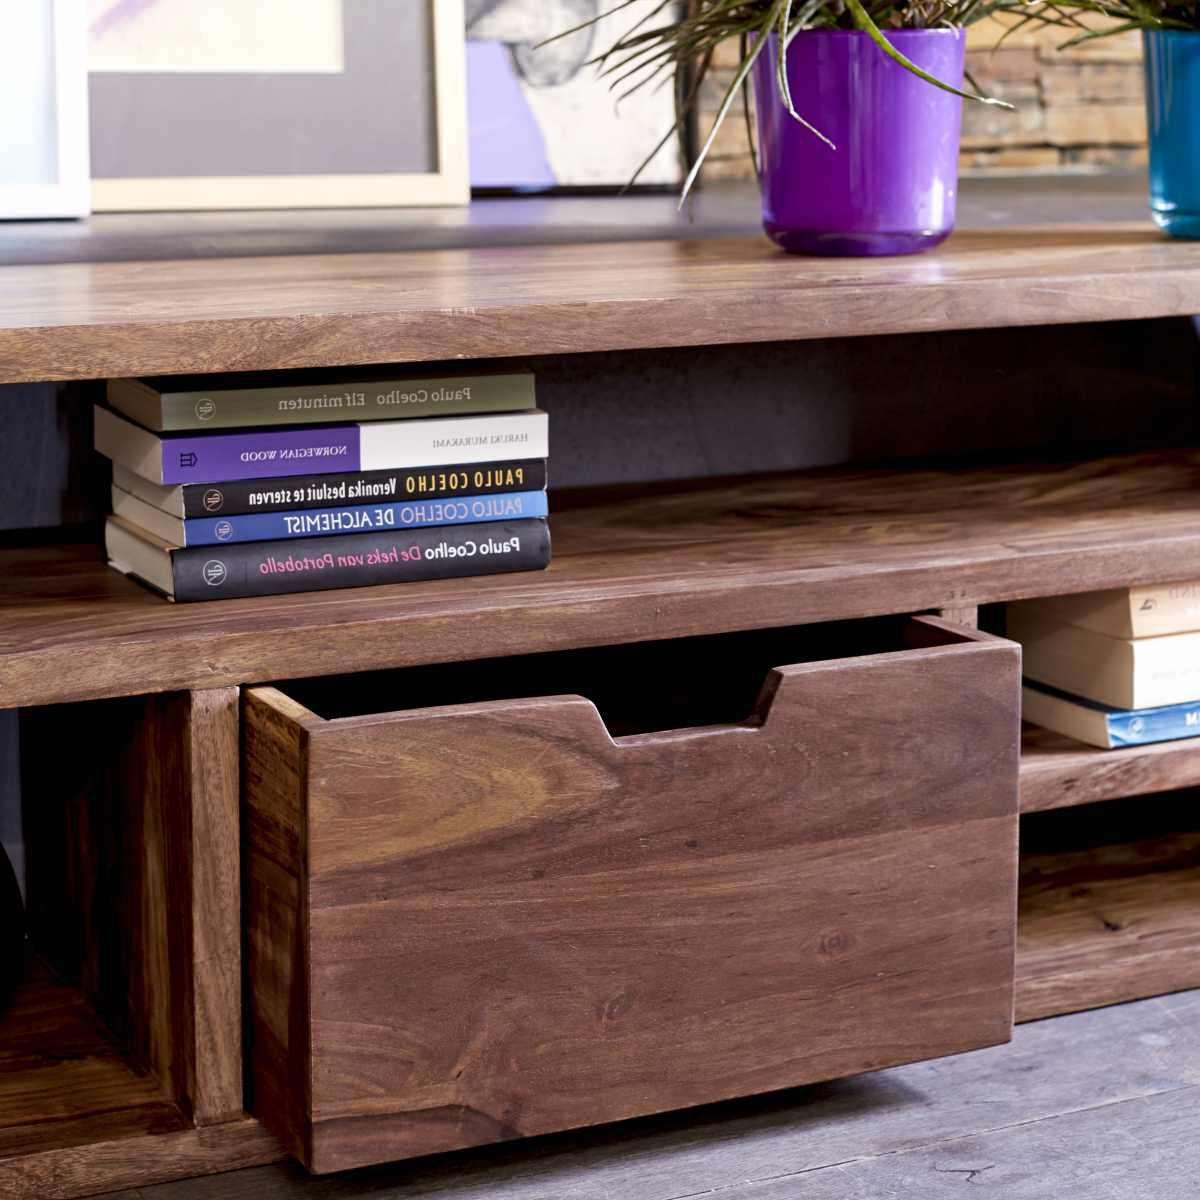 Mango Wood Tv Stand: The Natural Appeal — Bitdigest Design Intended For Mango Wood Tv Stands (View 11 of 15)